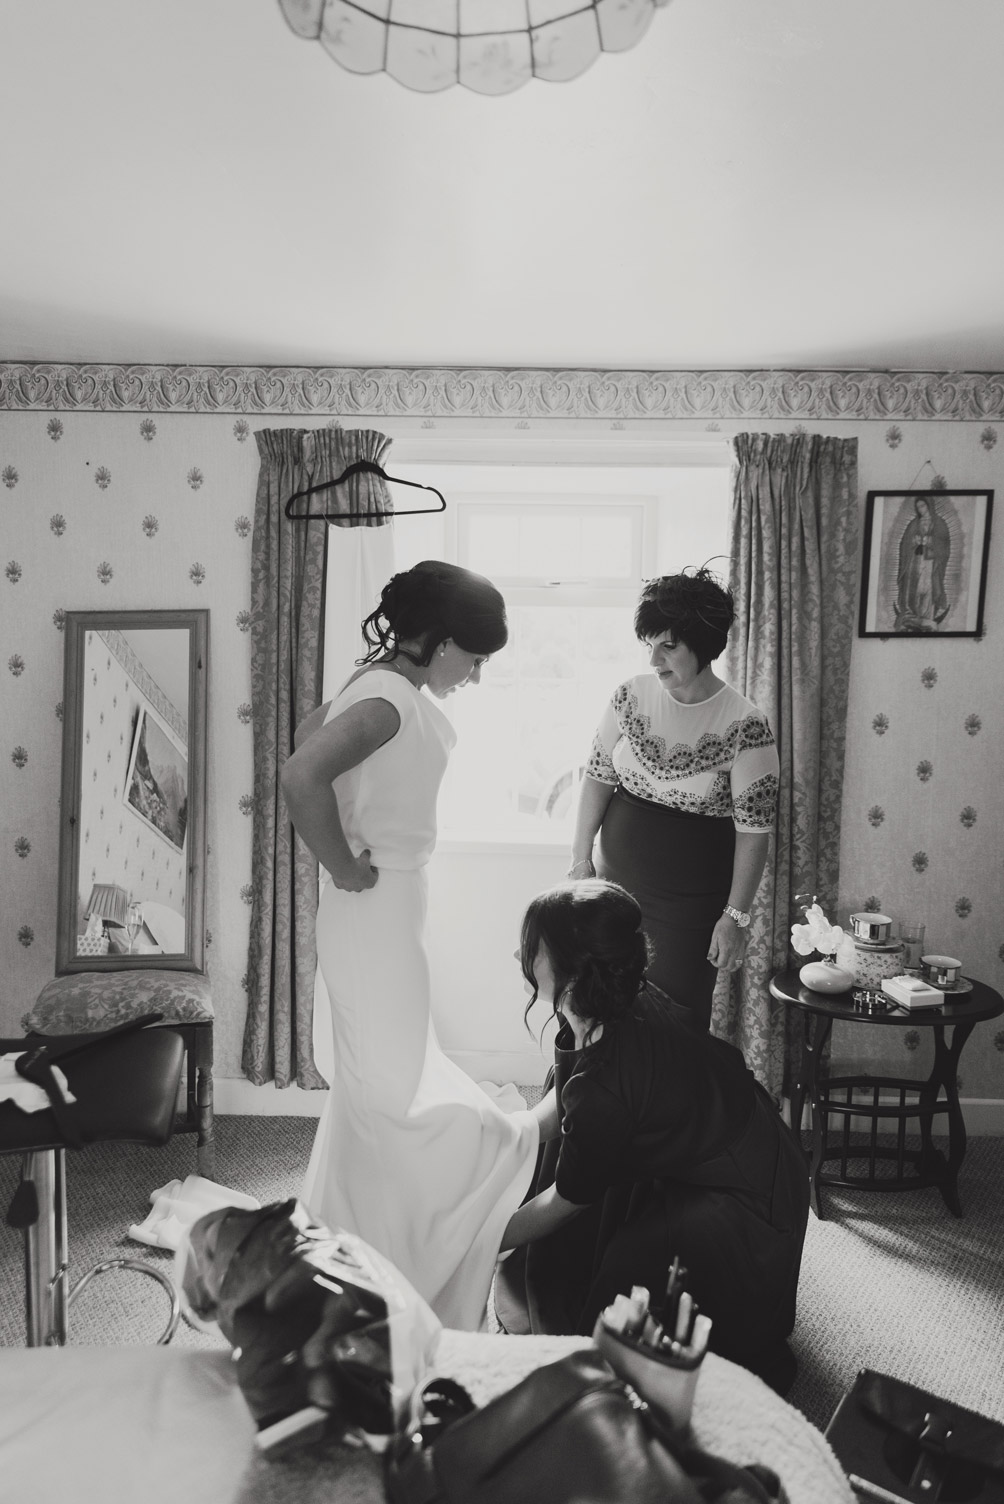 Bride getting dressed on morning of wedding. Photography meath ireland.